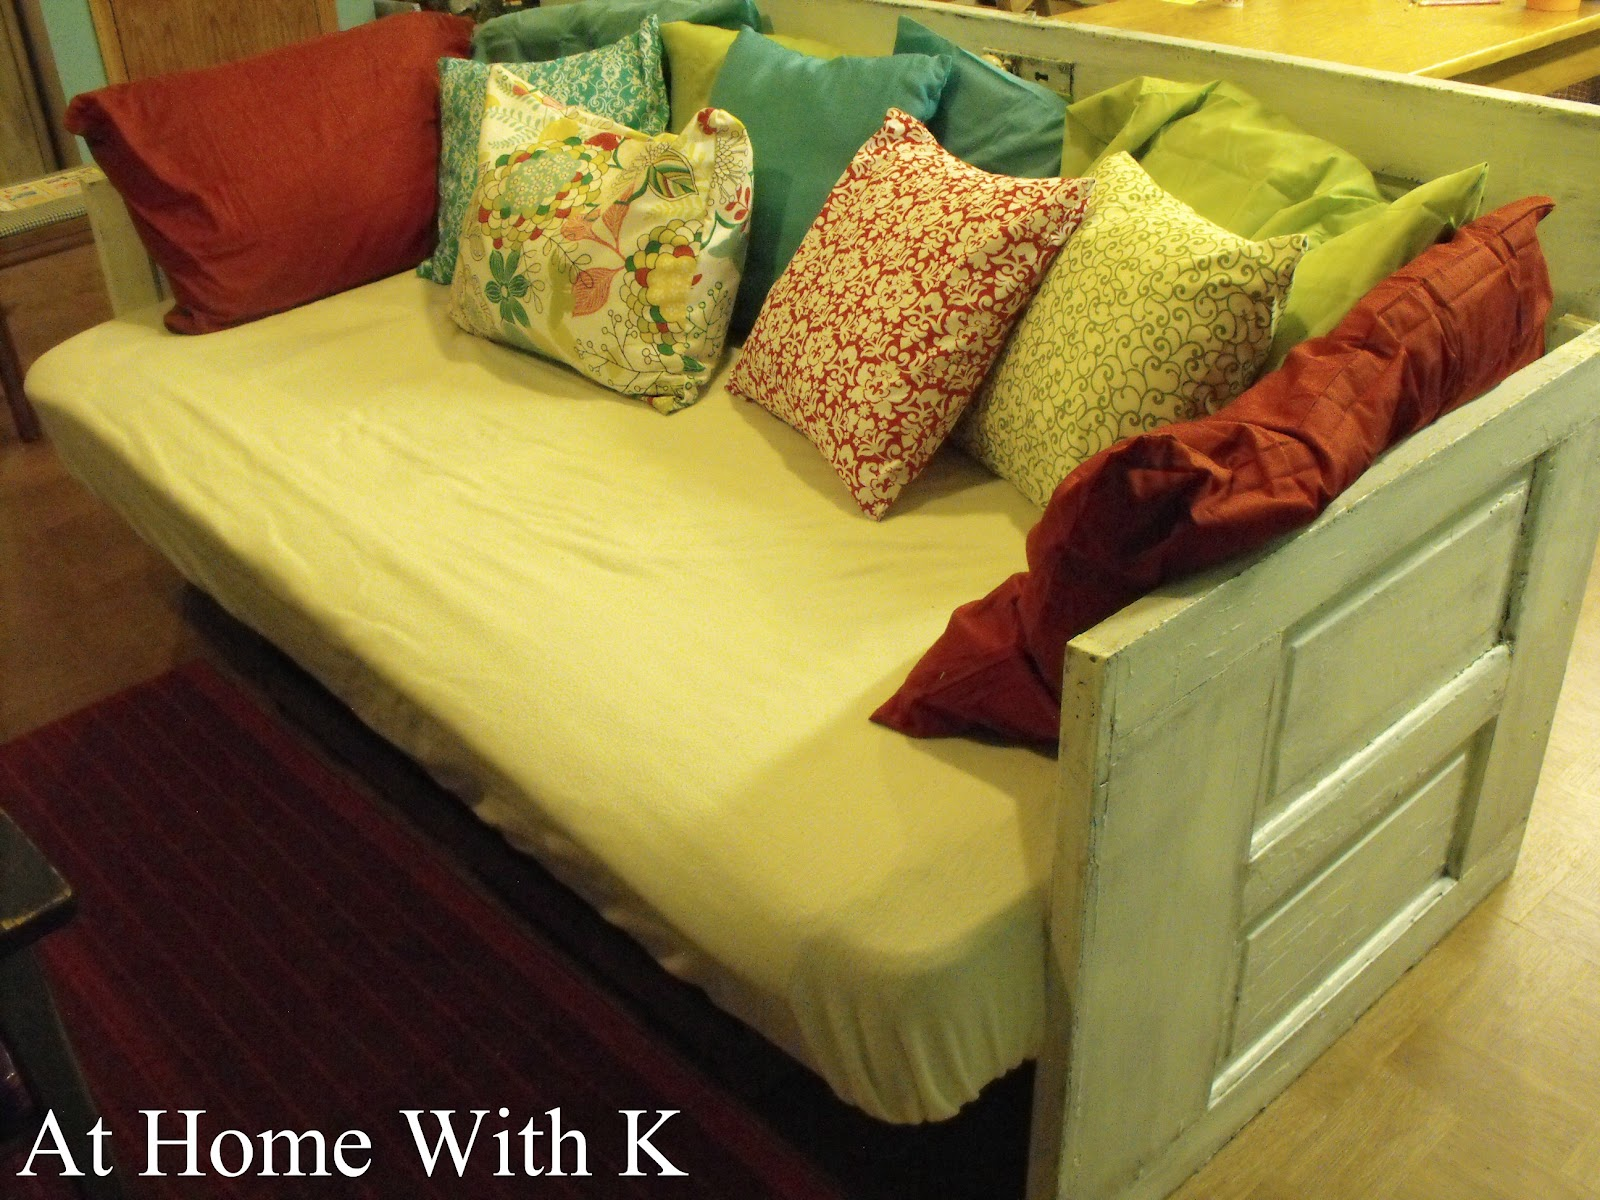 & At Home With K: DIY Door Couch